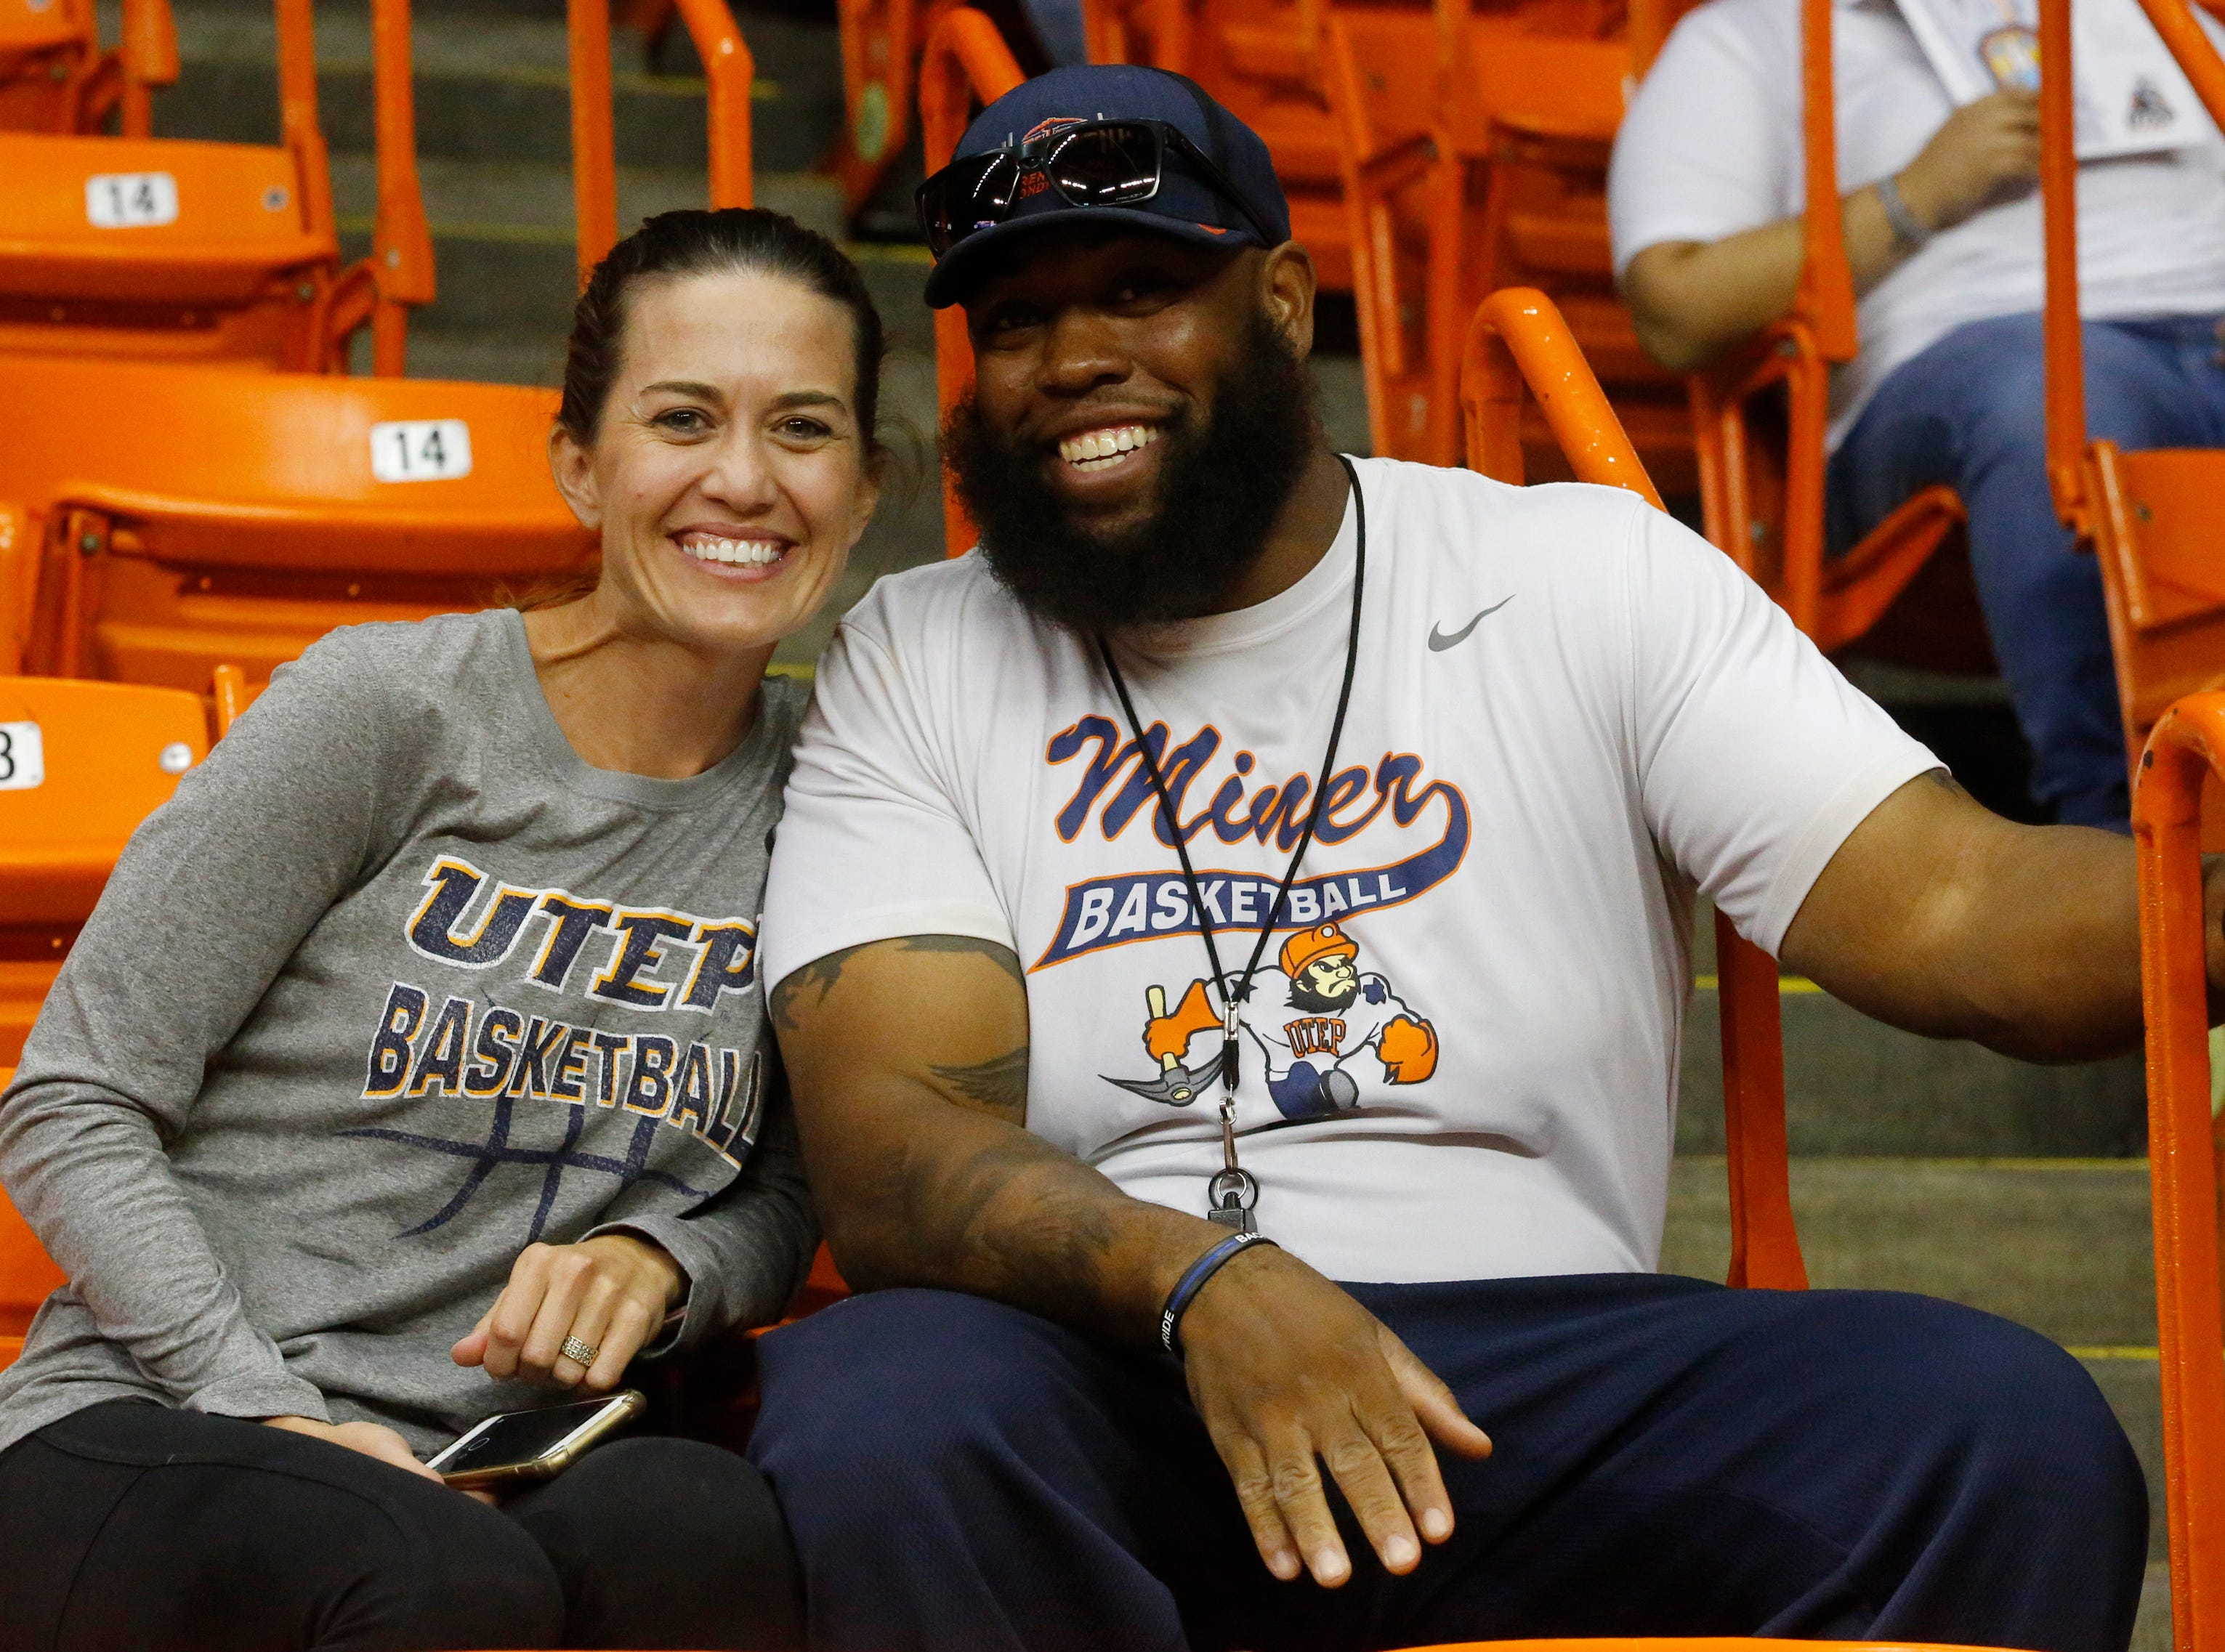 UTEP gave its loyal hoops fans just a tease on a quiet October Wednesday night in the Don Haskins Center during the 2018 Basketball Showcase.